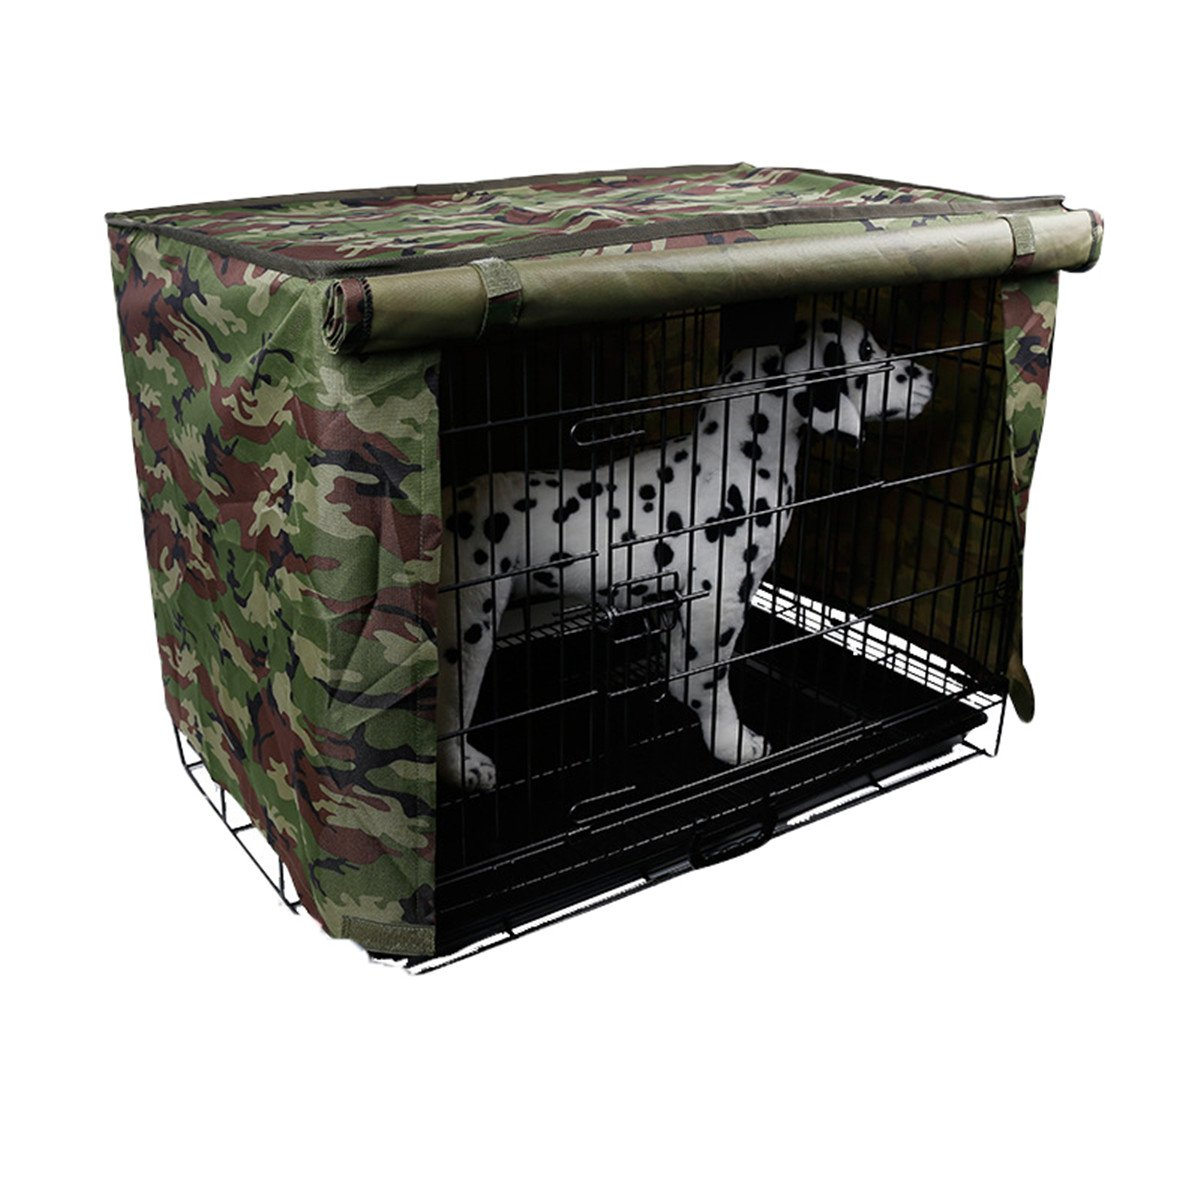 Spring Fever Multi Sizes Pet Kennel Covers Dustproof Windbreak for Dog Crates Green M(23.616.919.6inch)